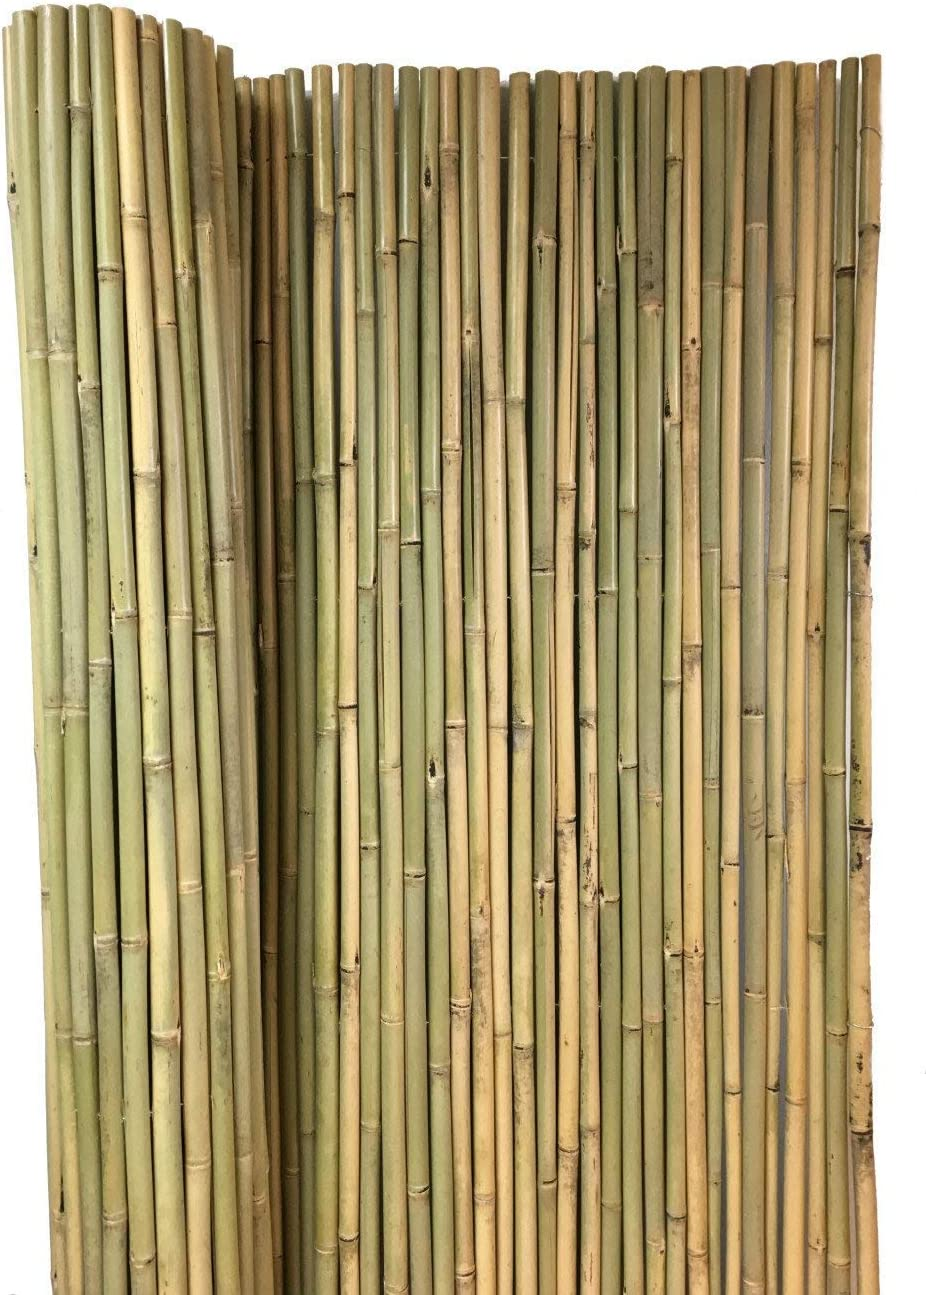 Max 84% OFF MGP Tonkin Outlet sale feature Bamboo Fence 6'L x 4'H